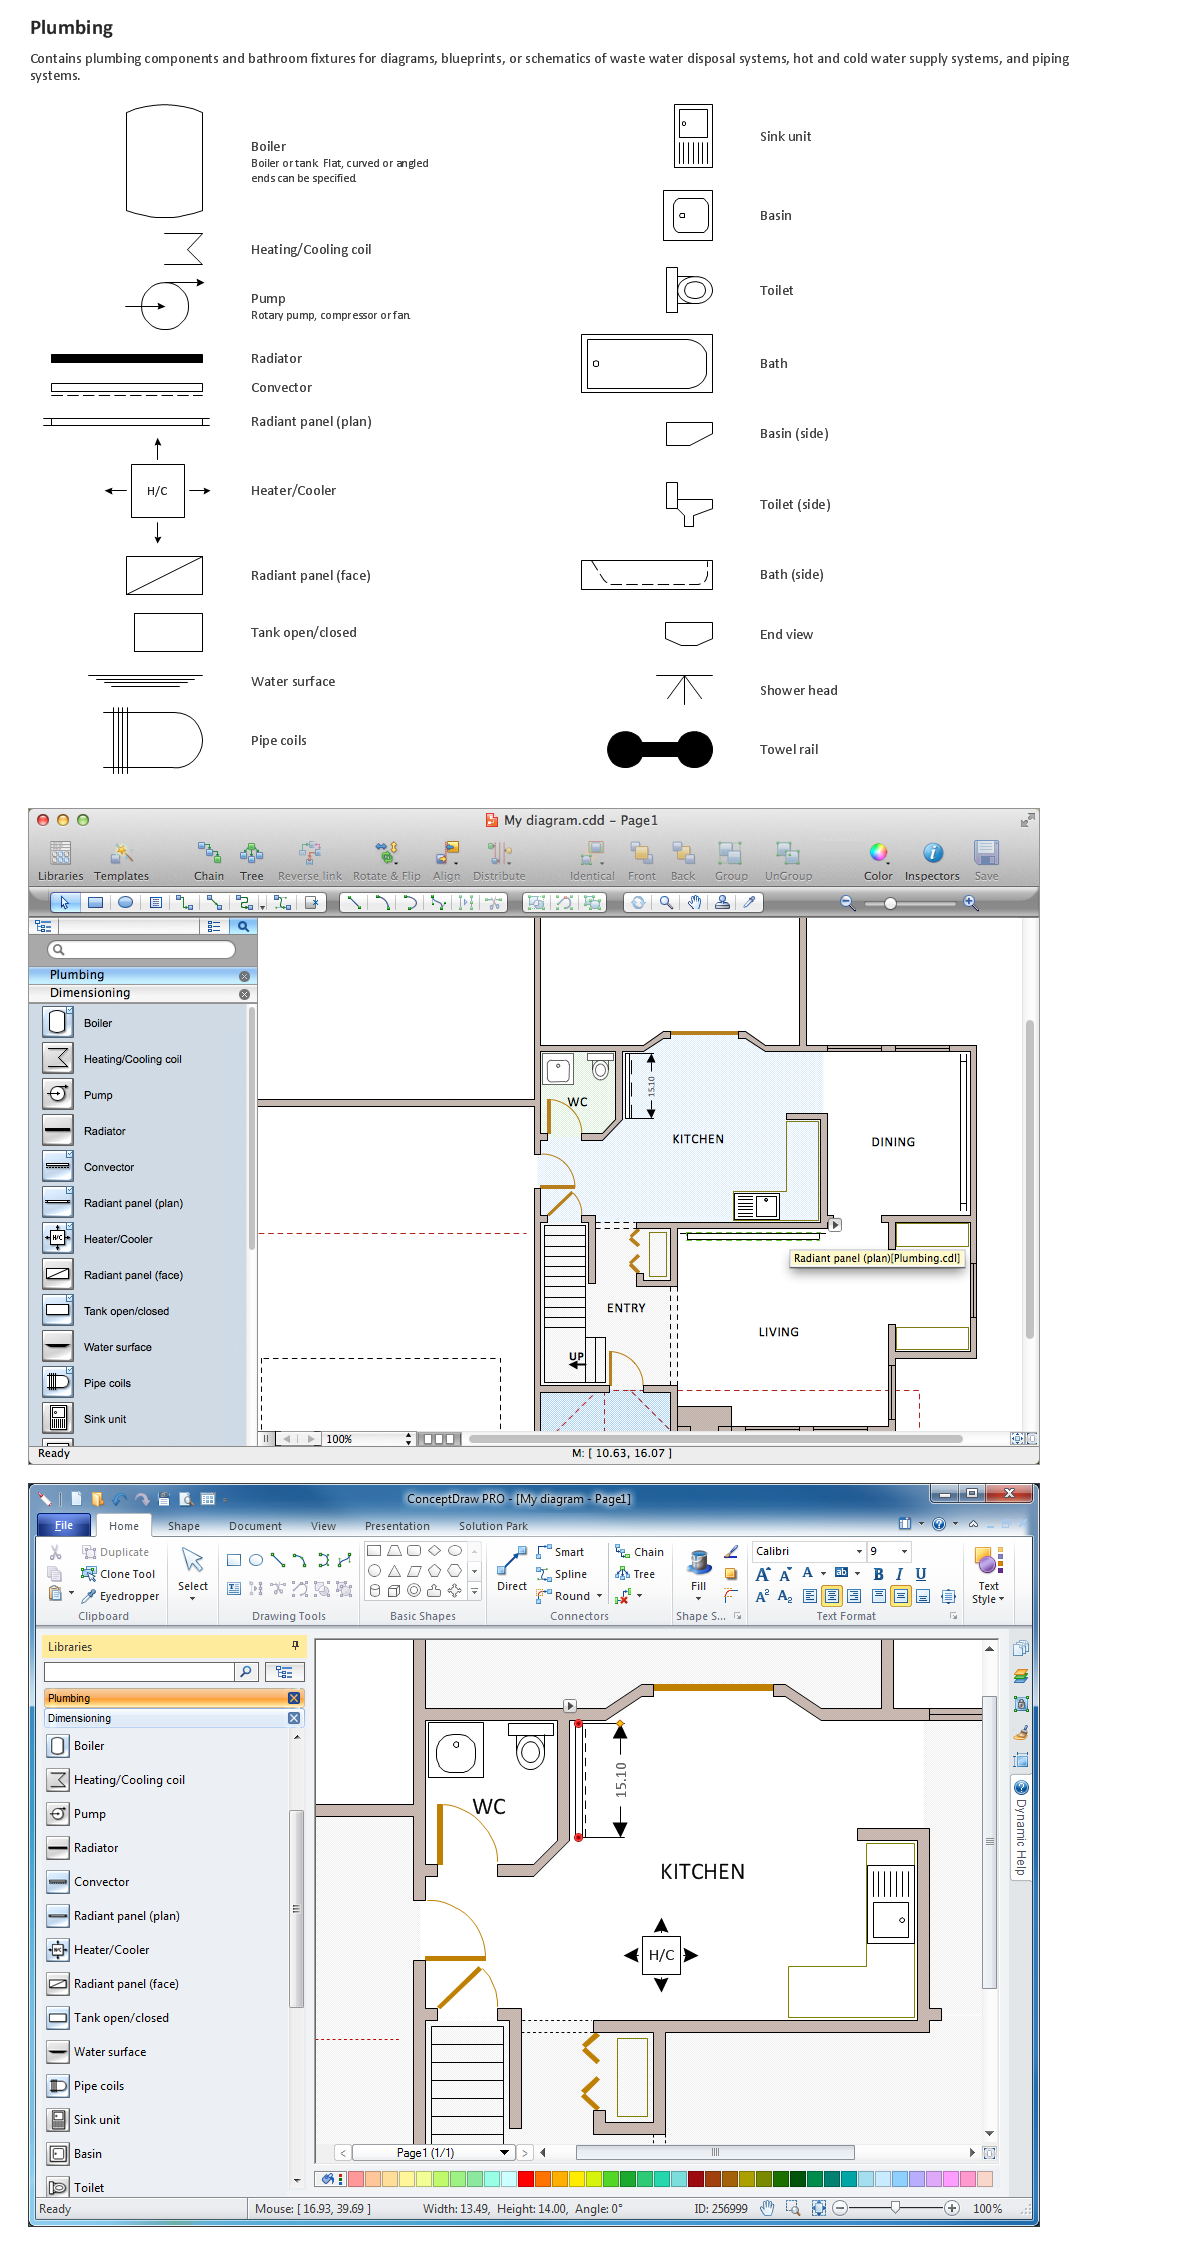 medium resolution of building drawing tools design elements plumbing electrical plan electrical symbols electrical diagram